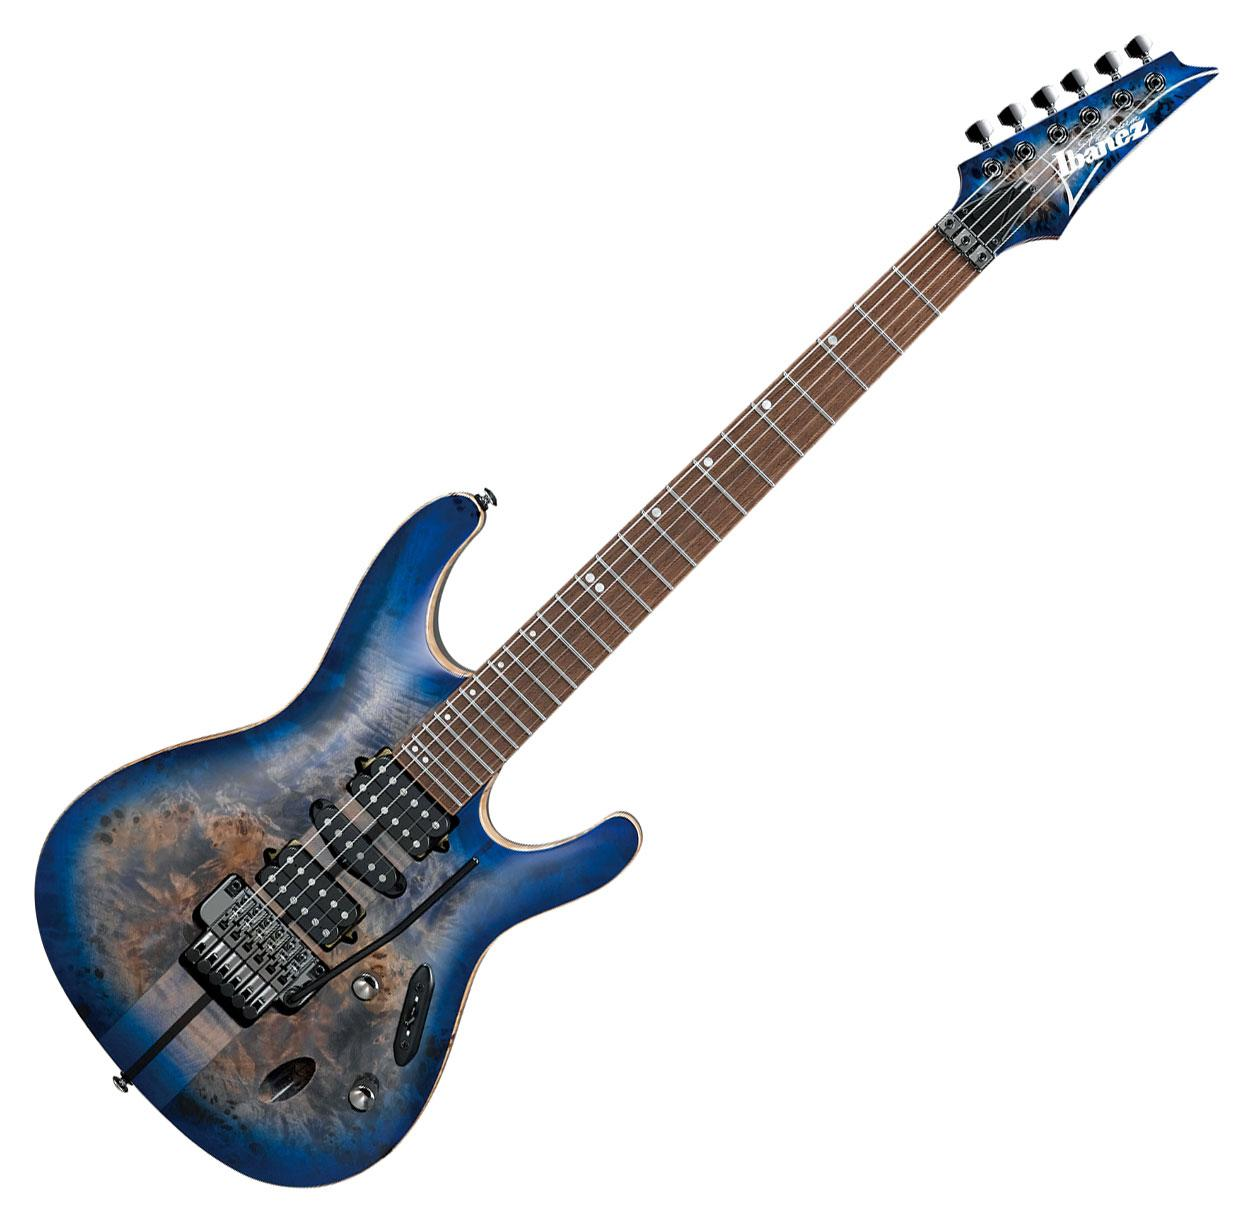 Ibanez S1070PBZ CLB Retoure (Zustand sehr gut)